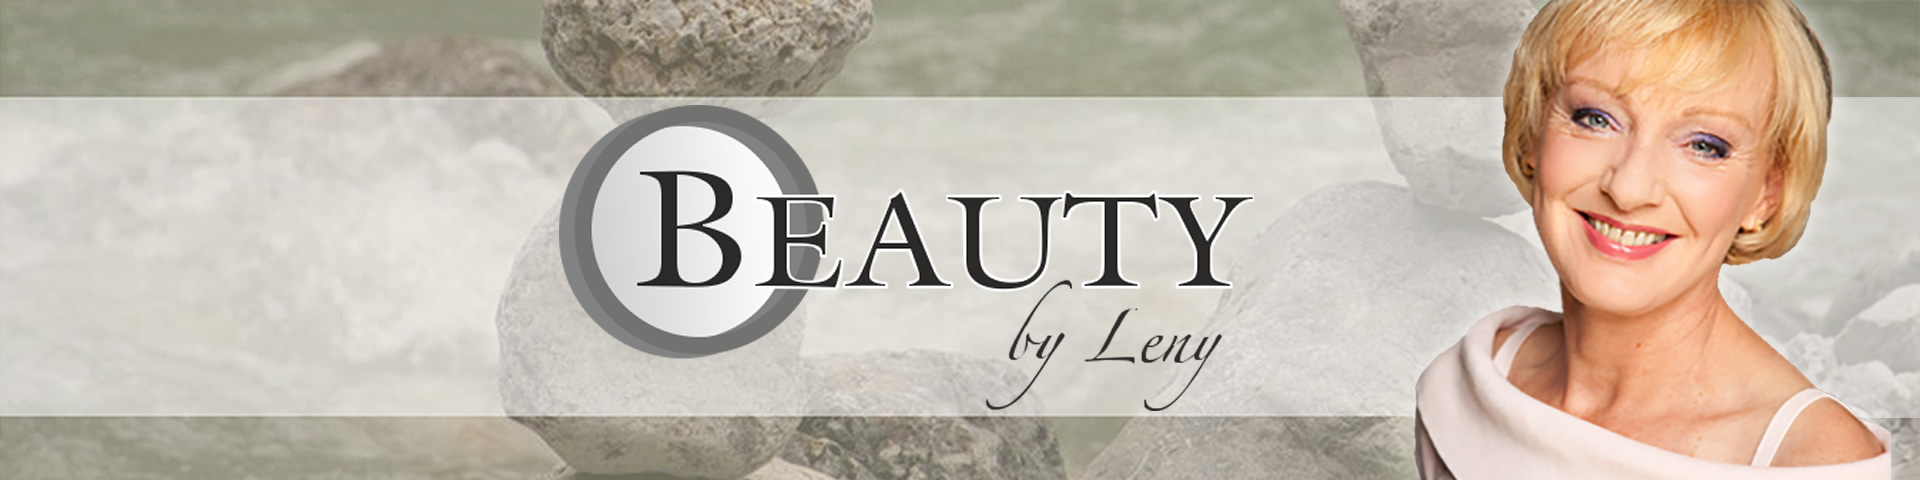 Beauty by Leny